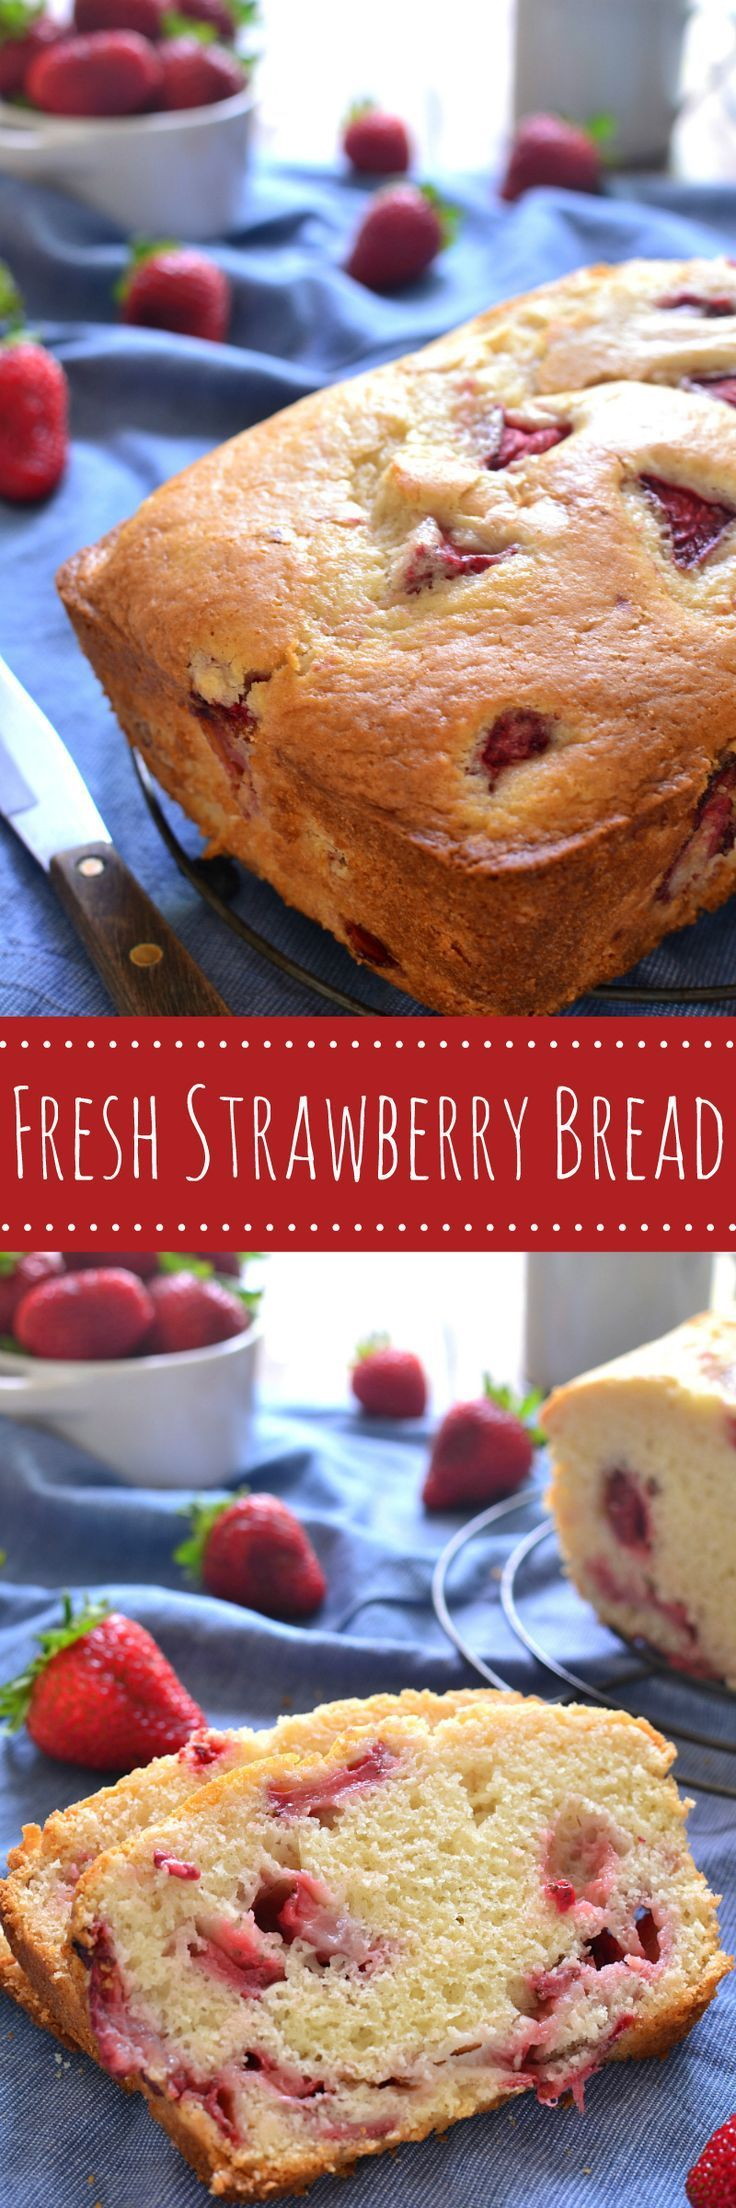 Fresh Strawberry Bread is the perfect way to make use of fresh summer strawberries! It comes together quickly and is packed with delicious strawberry flavor. Sure to be a family favorite!